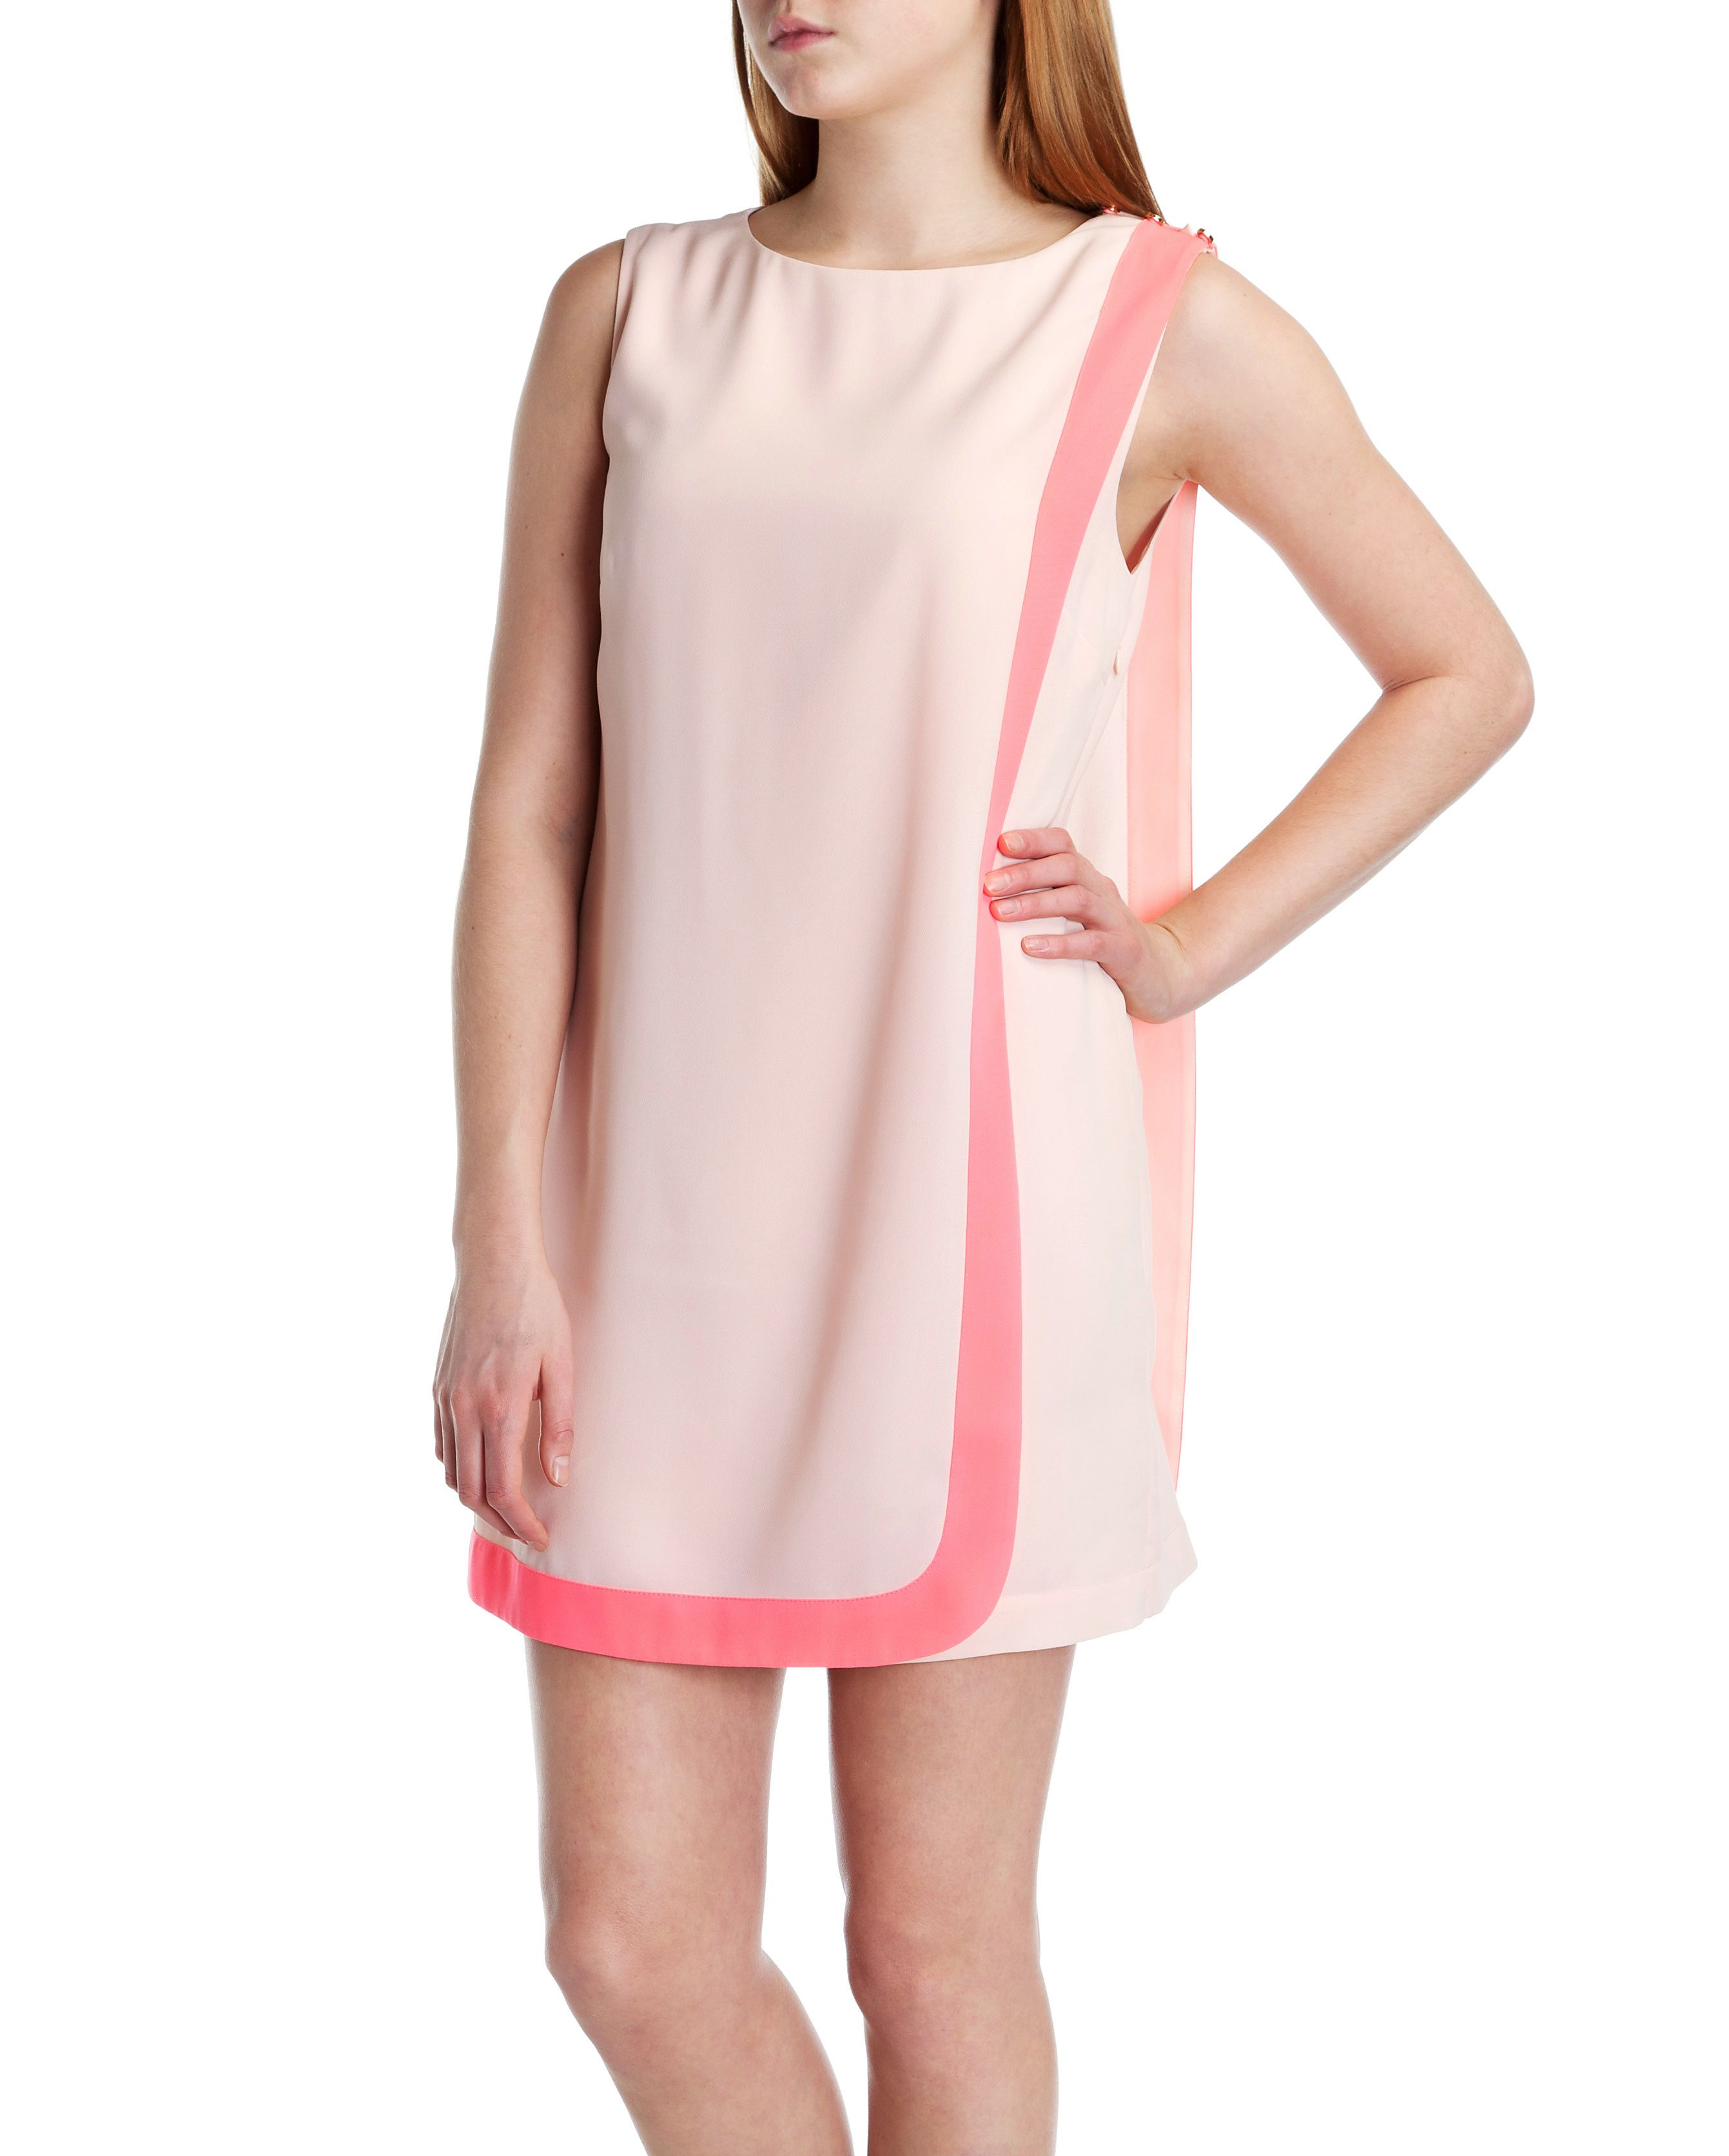 Cosette sleeveless tunic